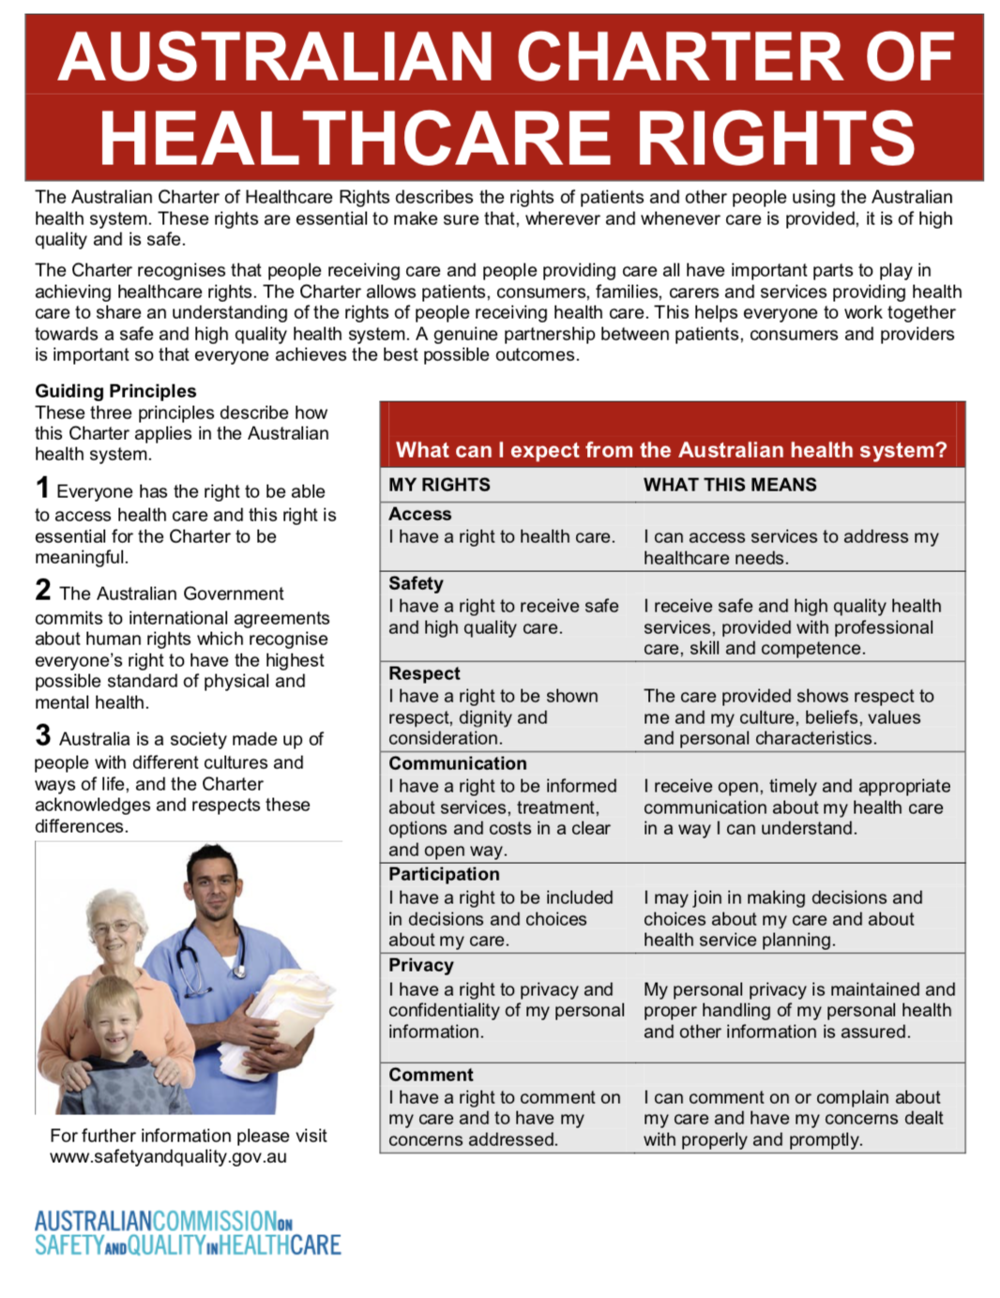 AUSTRALIAN CHARTER OF HEALTHCARE RIGHTS.png